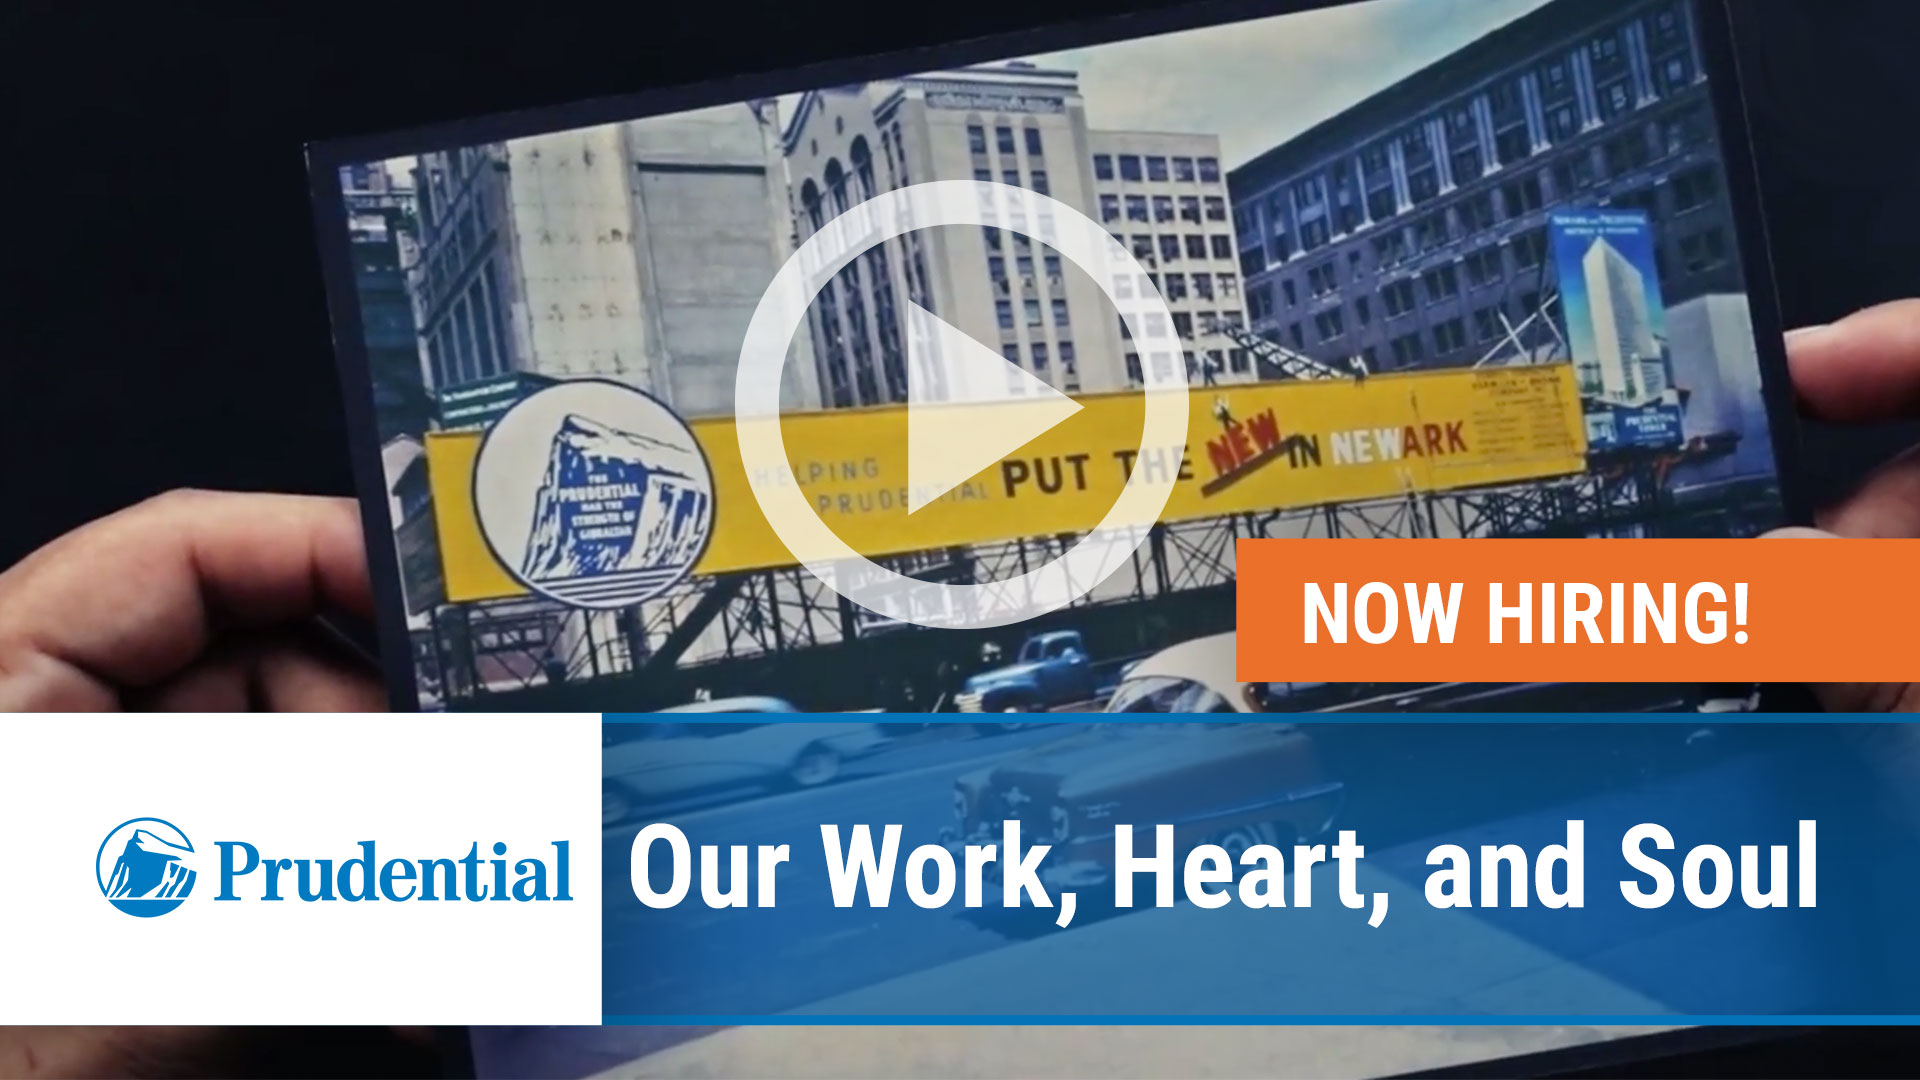 Watch our careers video for available job opening Our Work, Heart, and Soul in Newark, NJ, USA